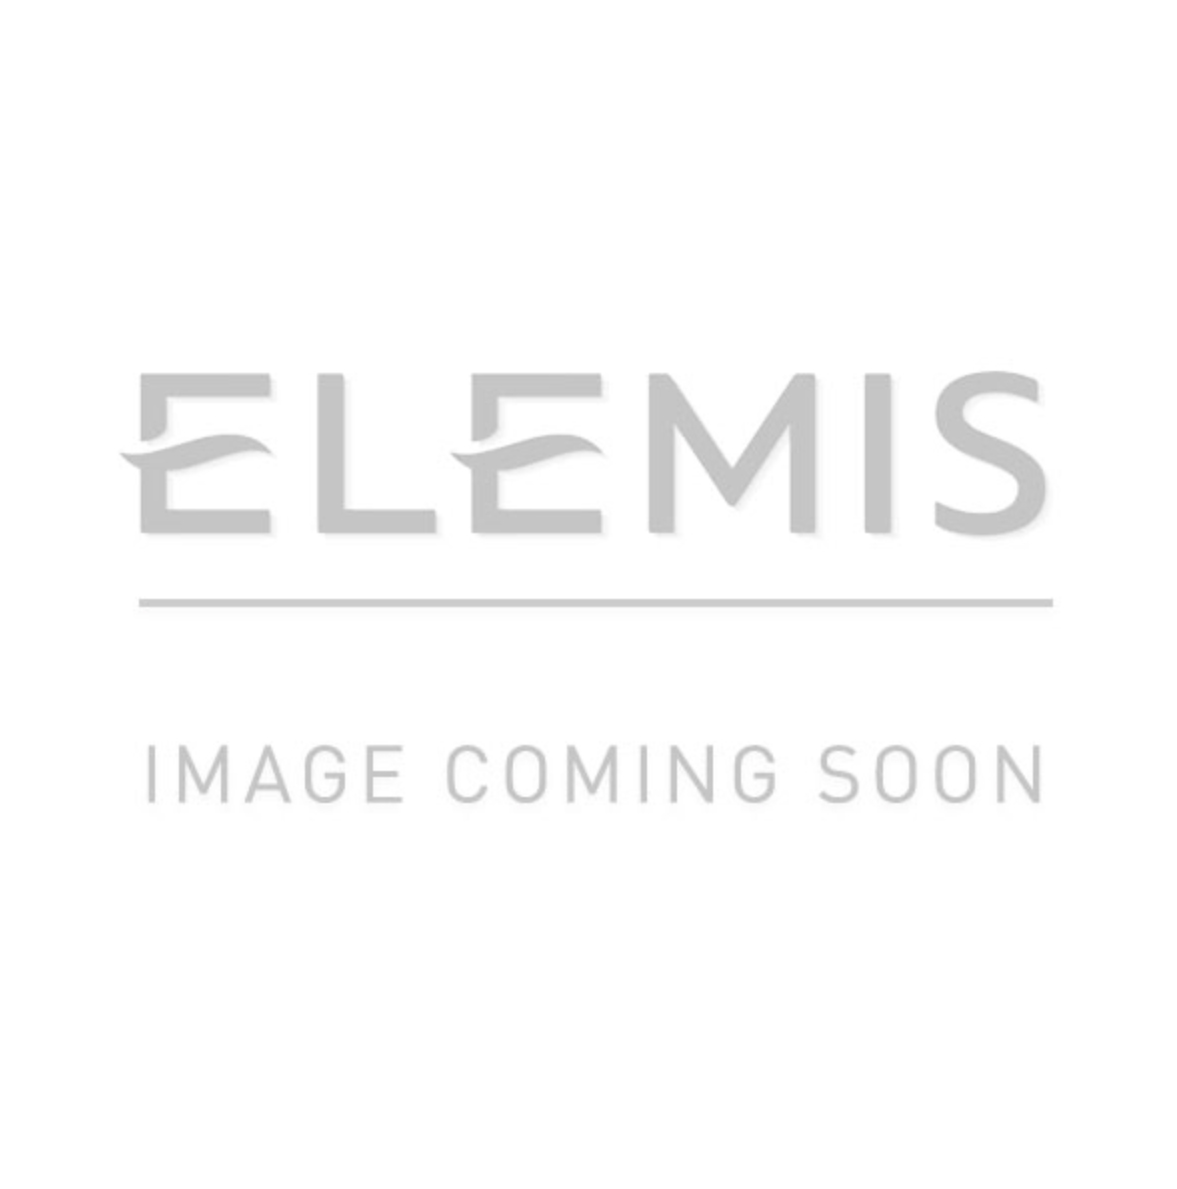 Elemis for Pregnancy and spa treatments